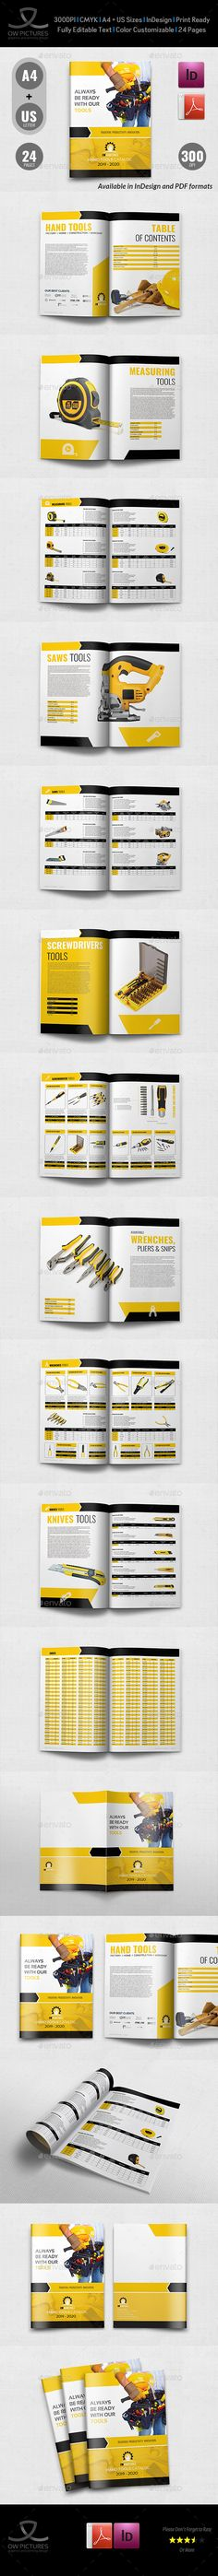 Hand Tools Products Catalog Brochure Template - 24 Pages - #Catalogs #Brochures Download here: https://graphicriver.net/item/hand-tools-products-catalog-brochure-template-24-pages/20097276?ref=alena994